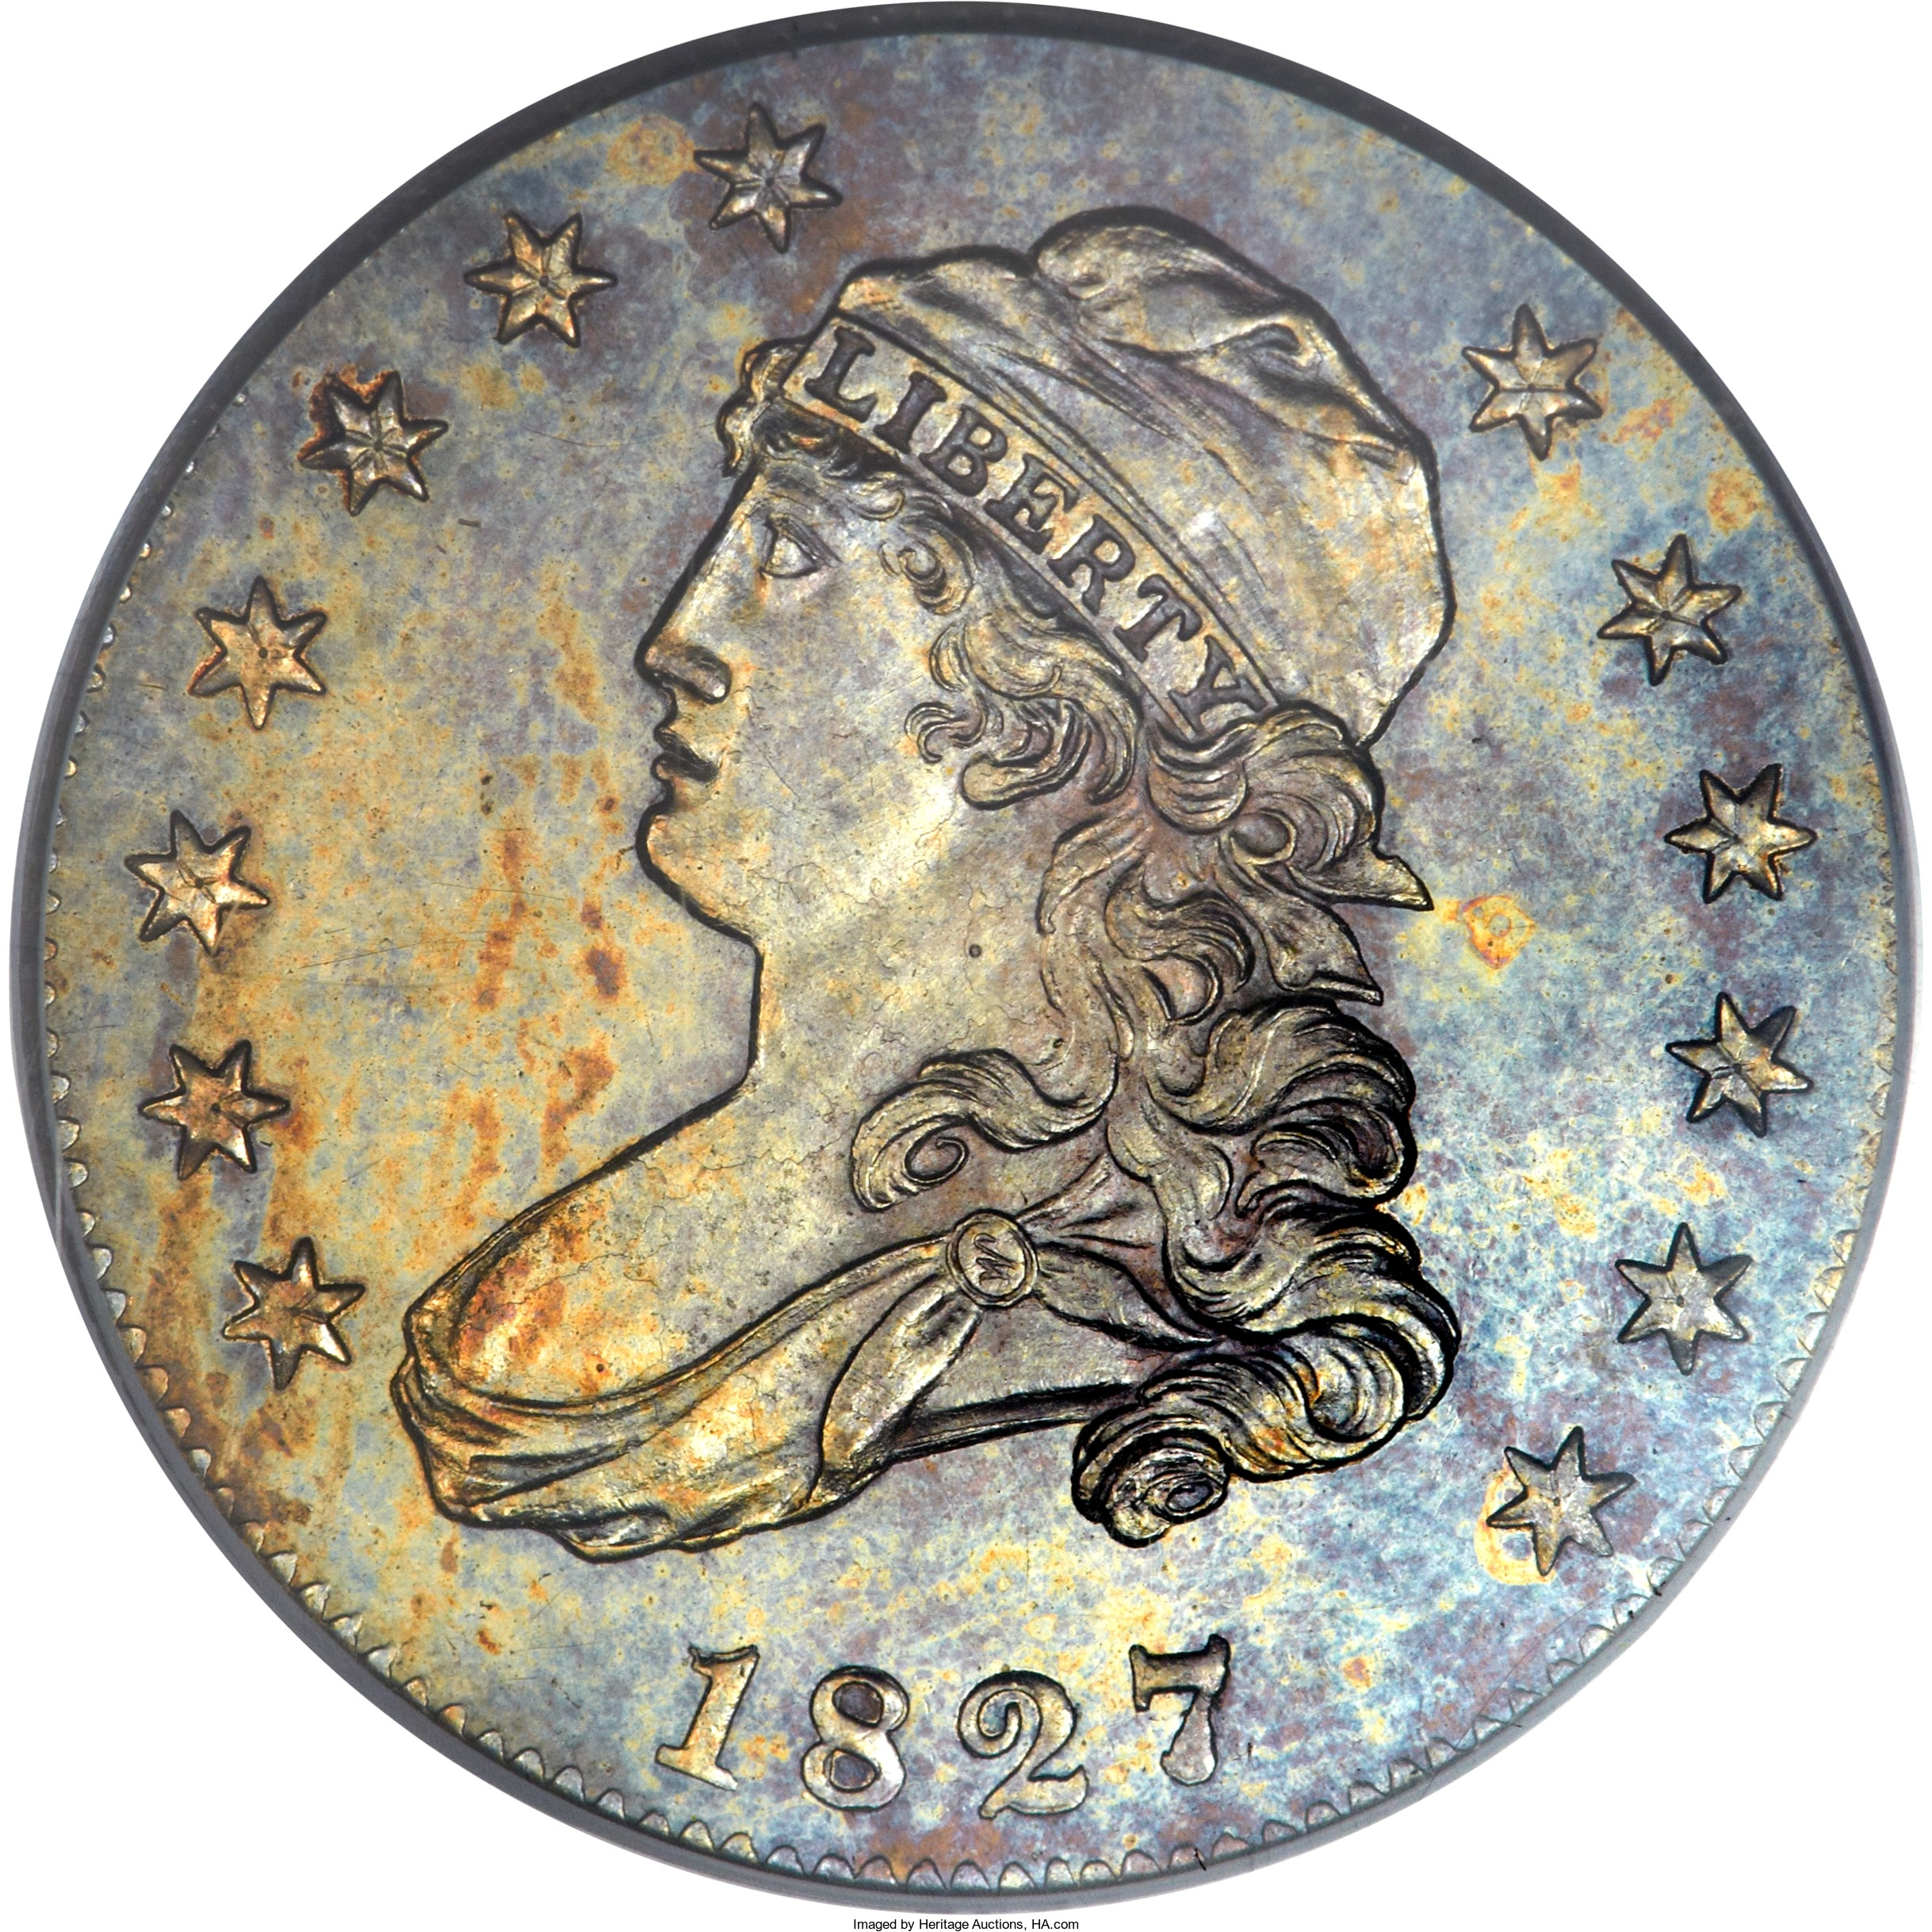 Obverse of original Proof 1827 quarter dollar that fetched $411,250 at auction in 2014.